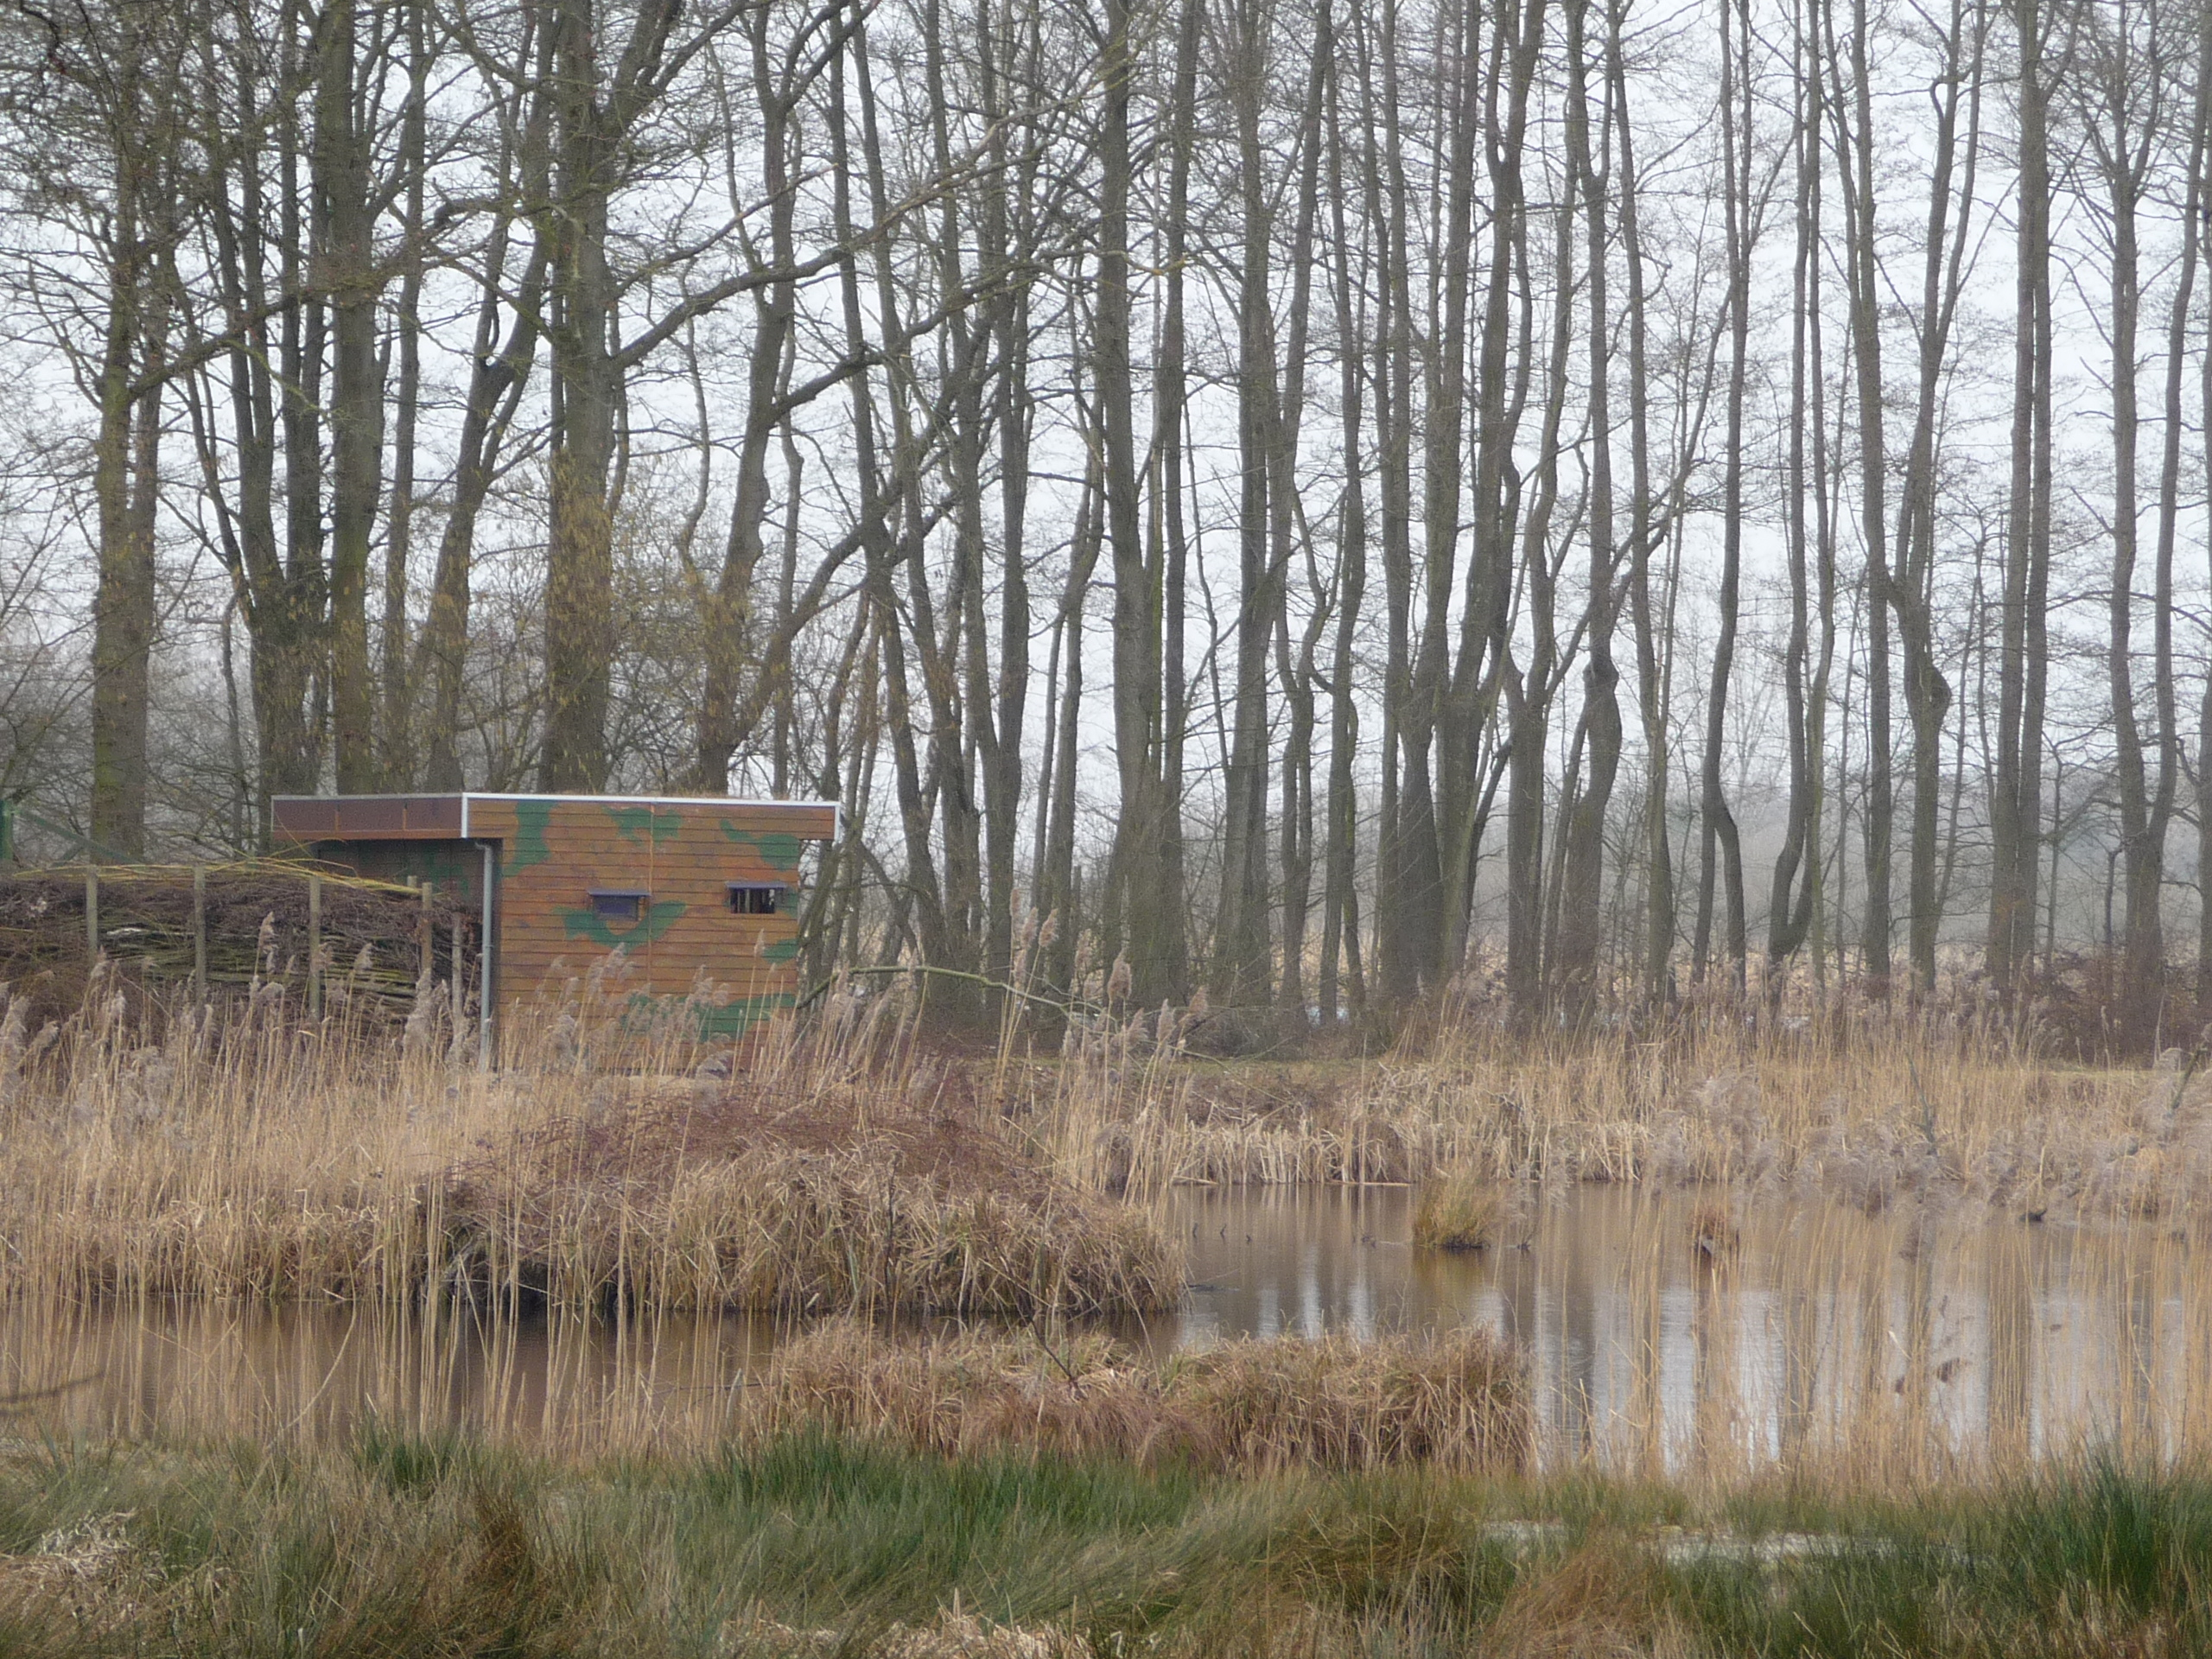 There are three bird hides open to the public; children might like the opportunity to see birds from close up